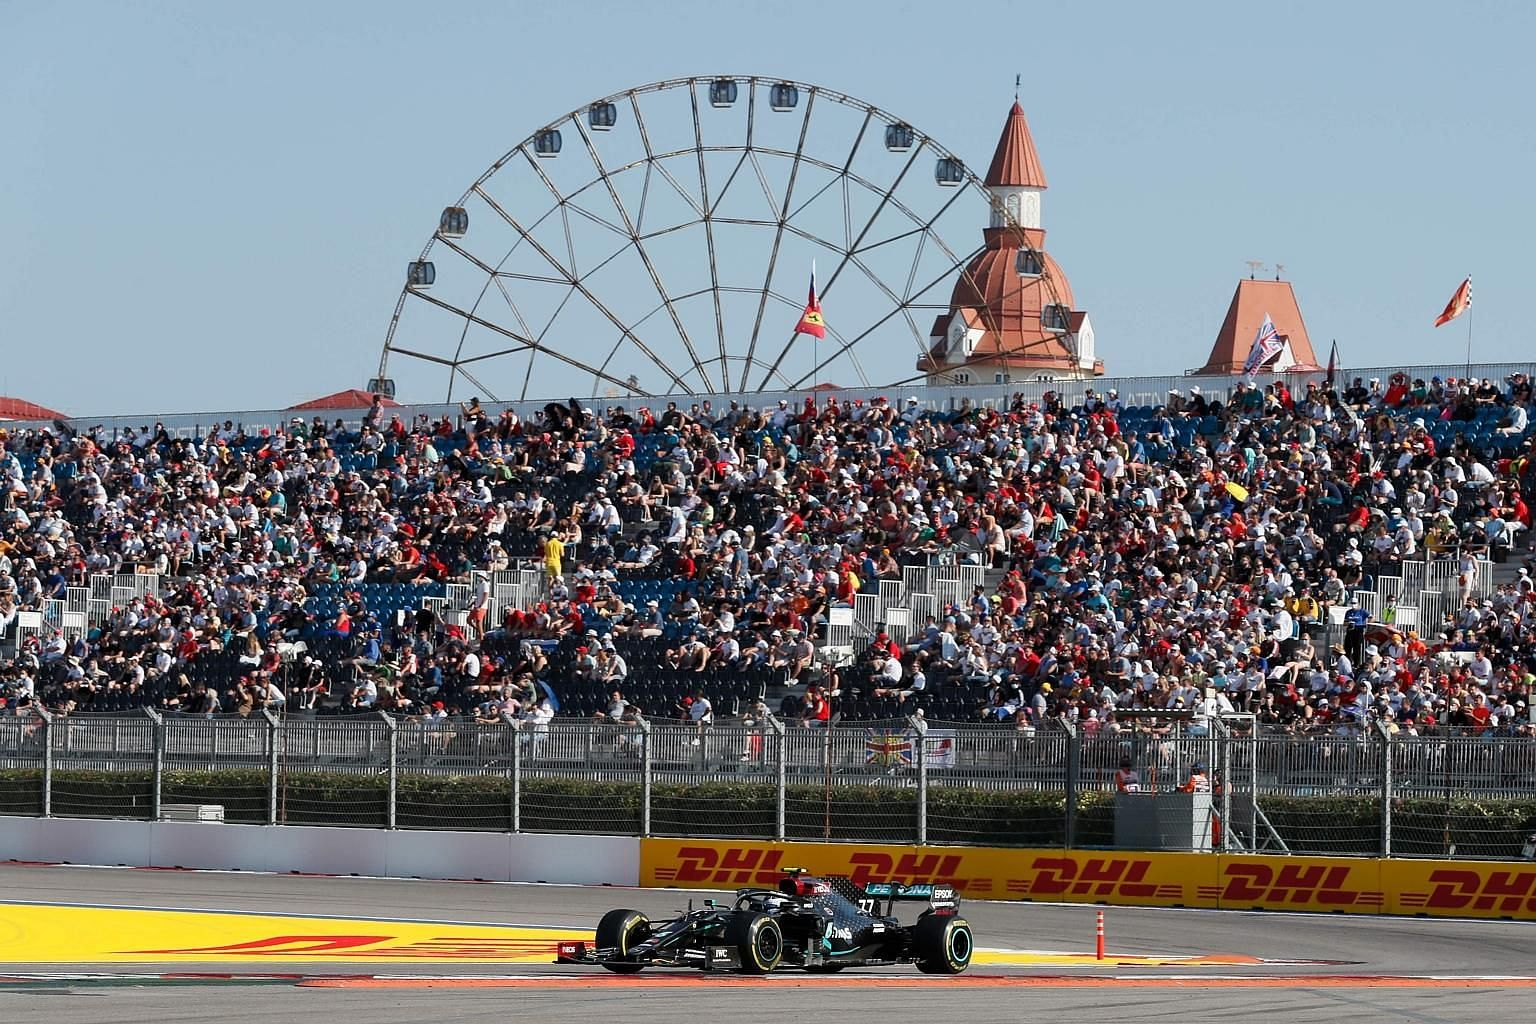 Mercedes driver Valtteri Bottas steering his car to victory in Sunday's Russian Grand Prix in Sochi. Despite the Finn starting third, it was a race where everything went right for him and one where little did for his teammate - pole sitter Lewis Hami